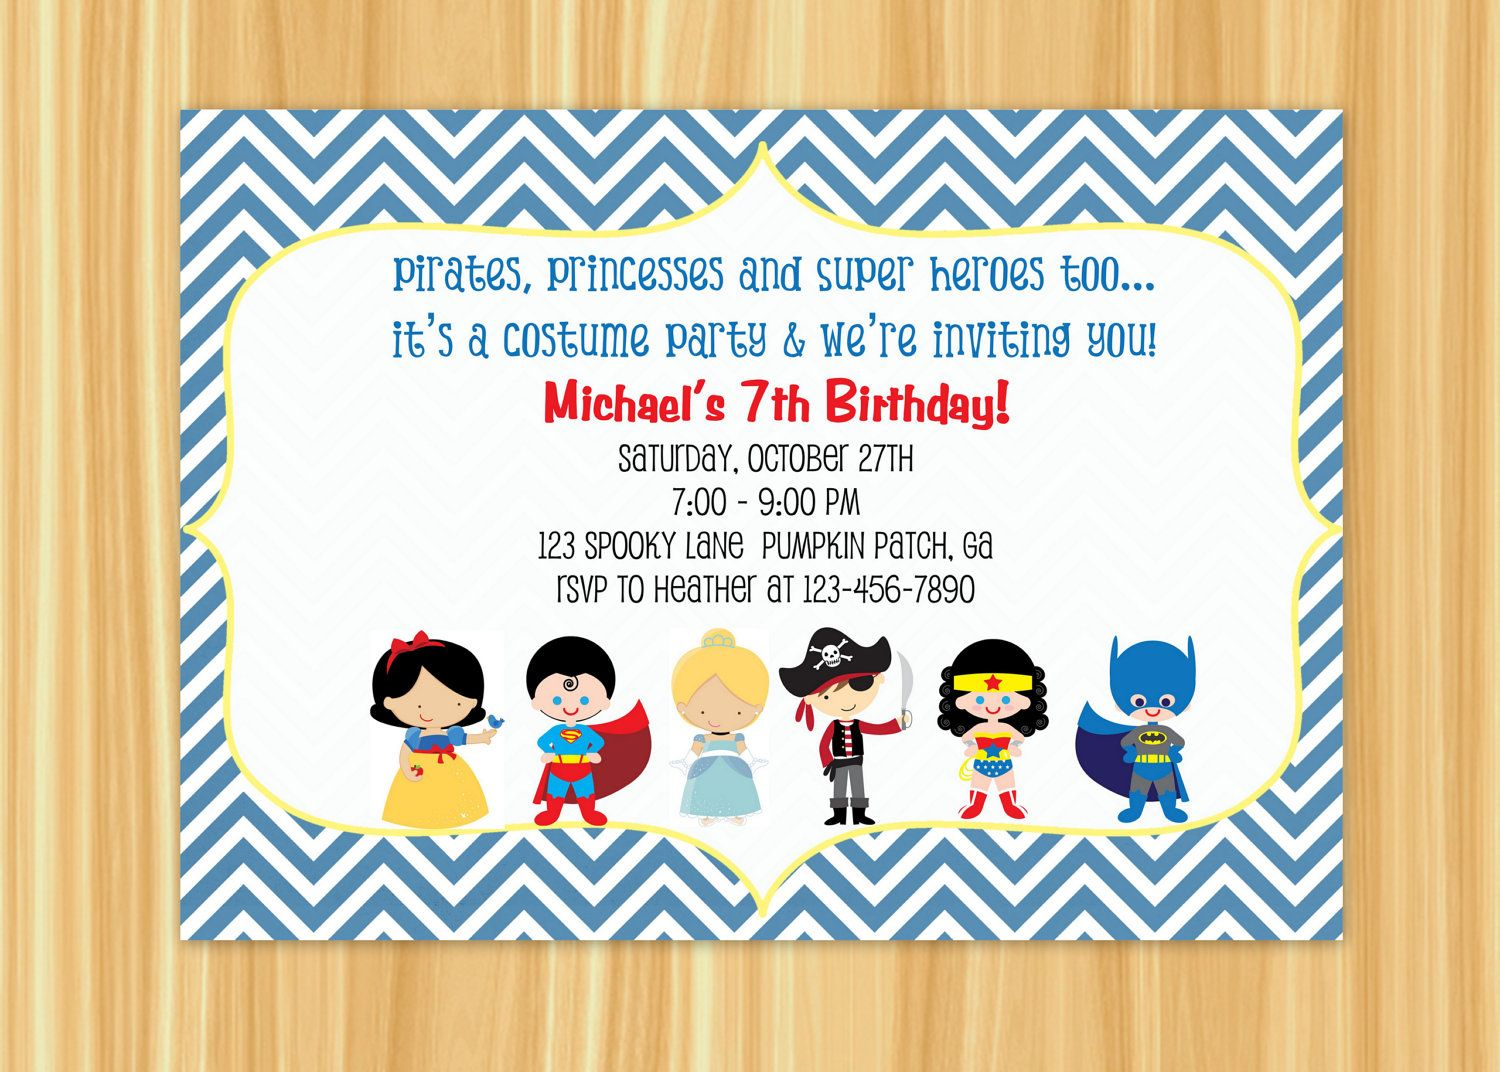 custom printable kids costume party birthday invitation